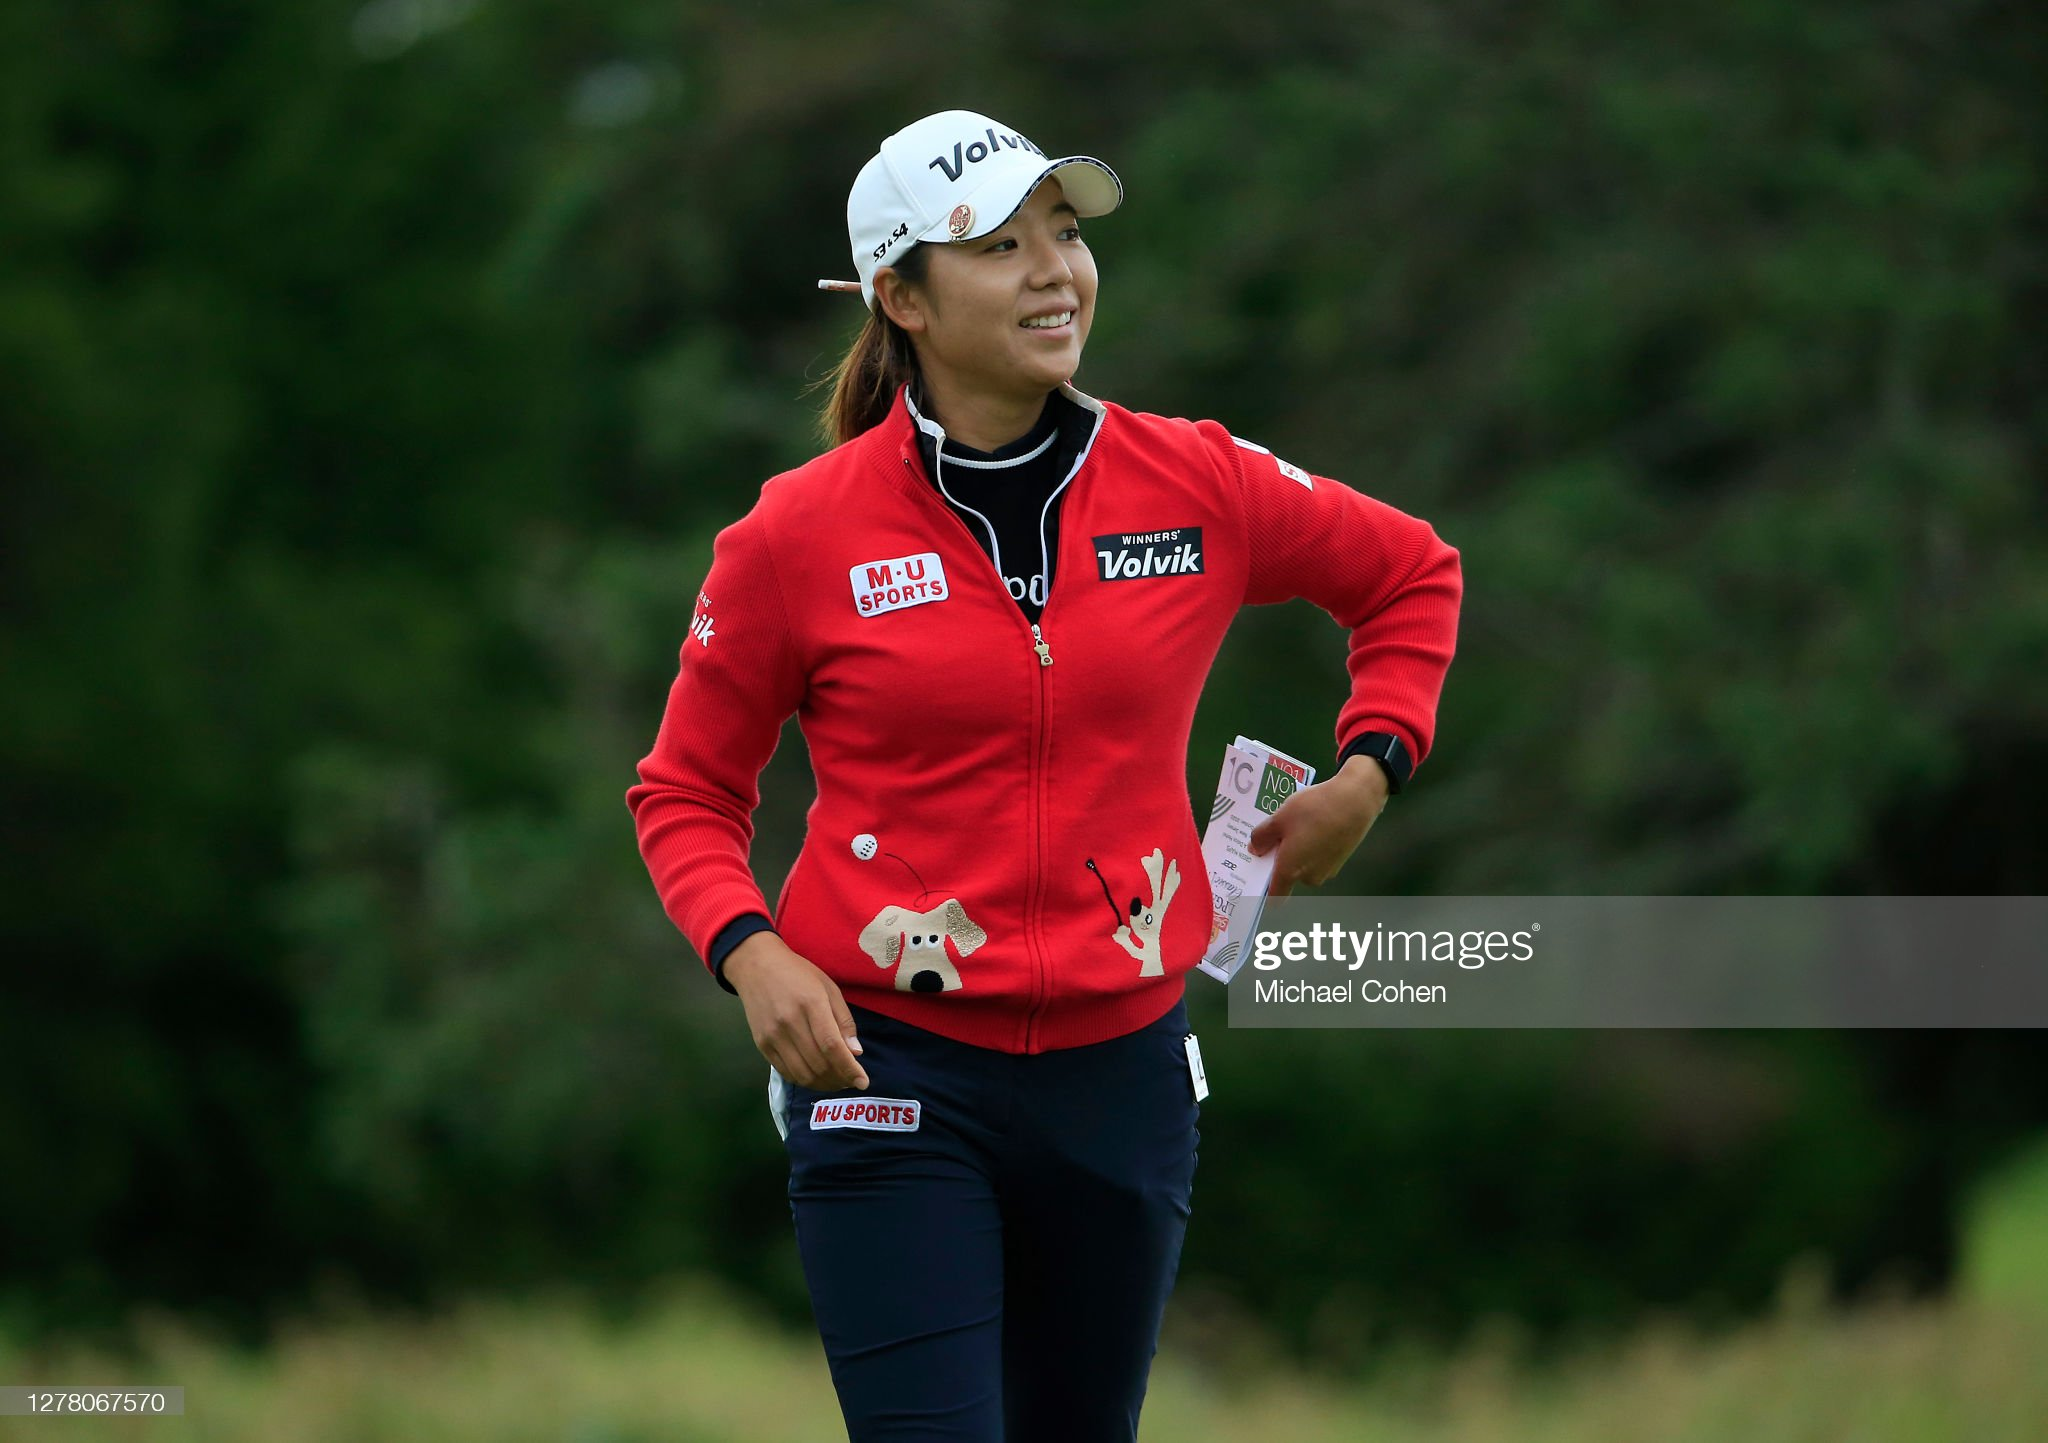 https://media.gettyimages.com/photos/mi-hyang-lee-of-korea-celebrates-her-birdie-putt-on-the-17th-green-picture-id1278067570?s=2048x2048